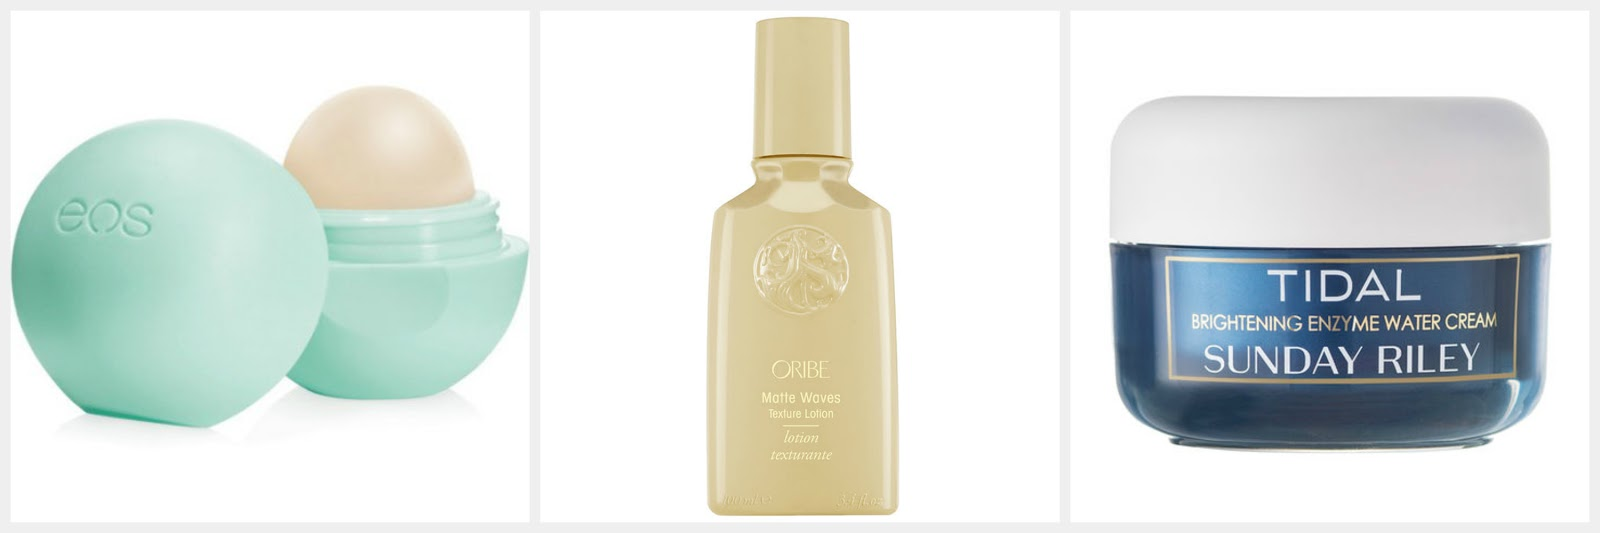 autumn winter beauty wish list sunday riley tidal oribe matte waves texturing spray eos lip balm